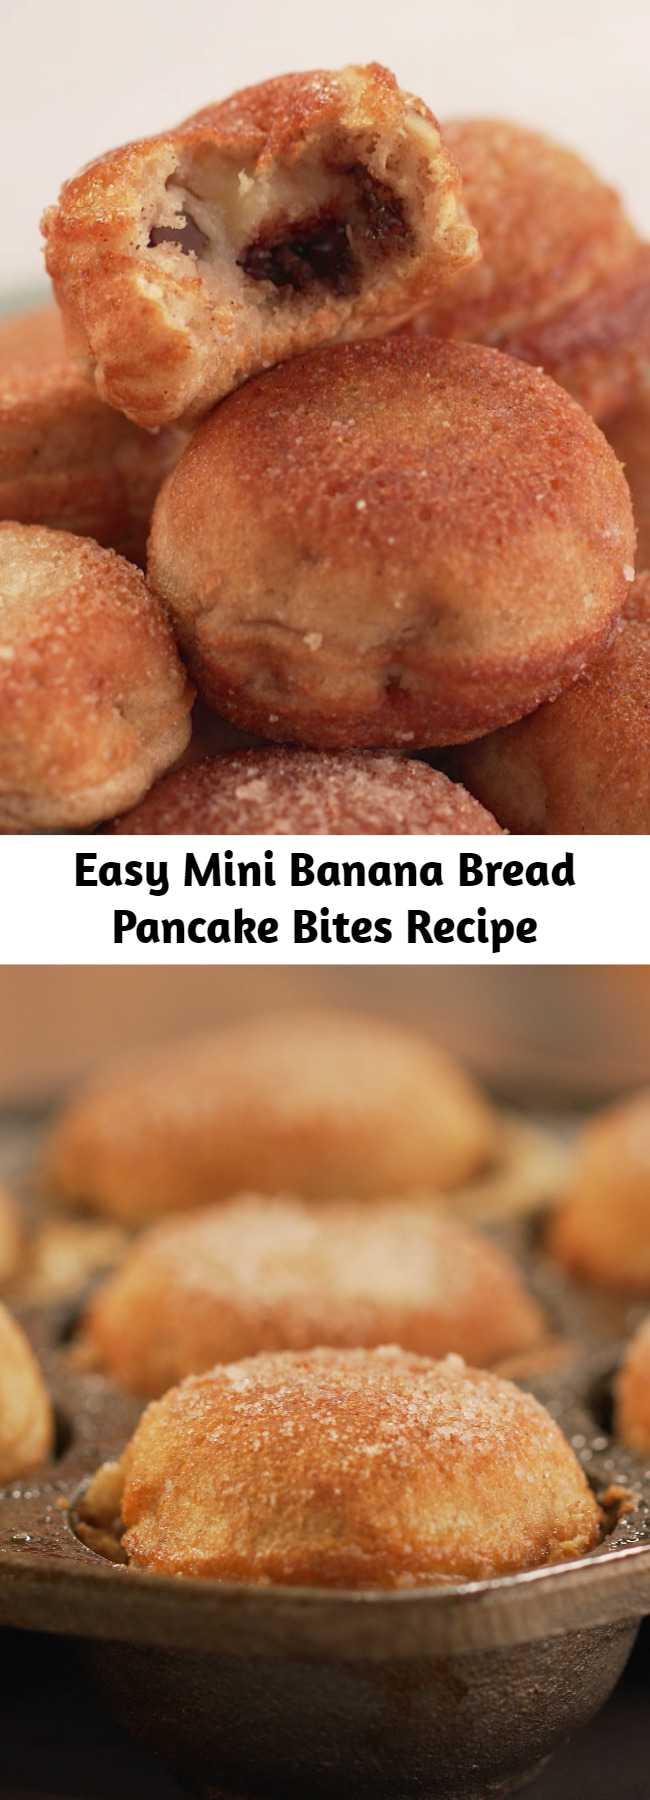 Easy Mini Banana Bread Pancake Bites Recipe - These light and fluffy bites are the perfect melding of two of your favorite comfort foods. Whether you enjoy them for breakfast or as a snack, they're sure to be your new favorite!